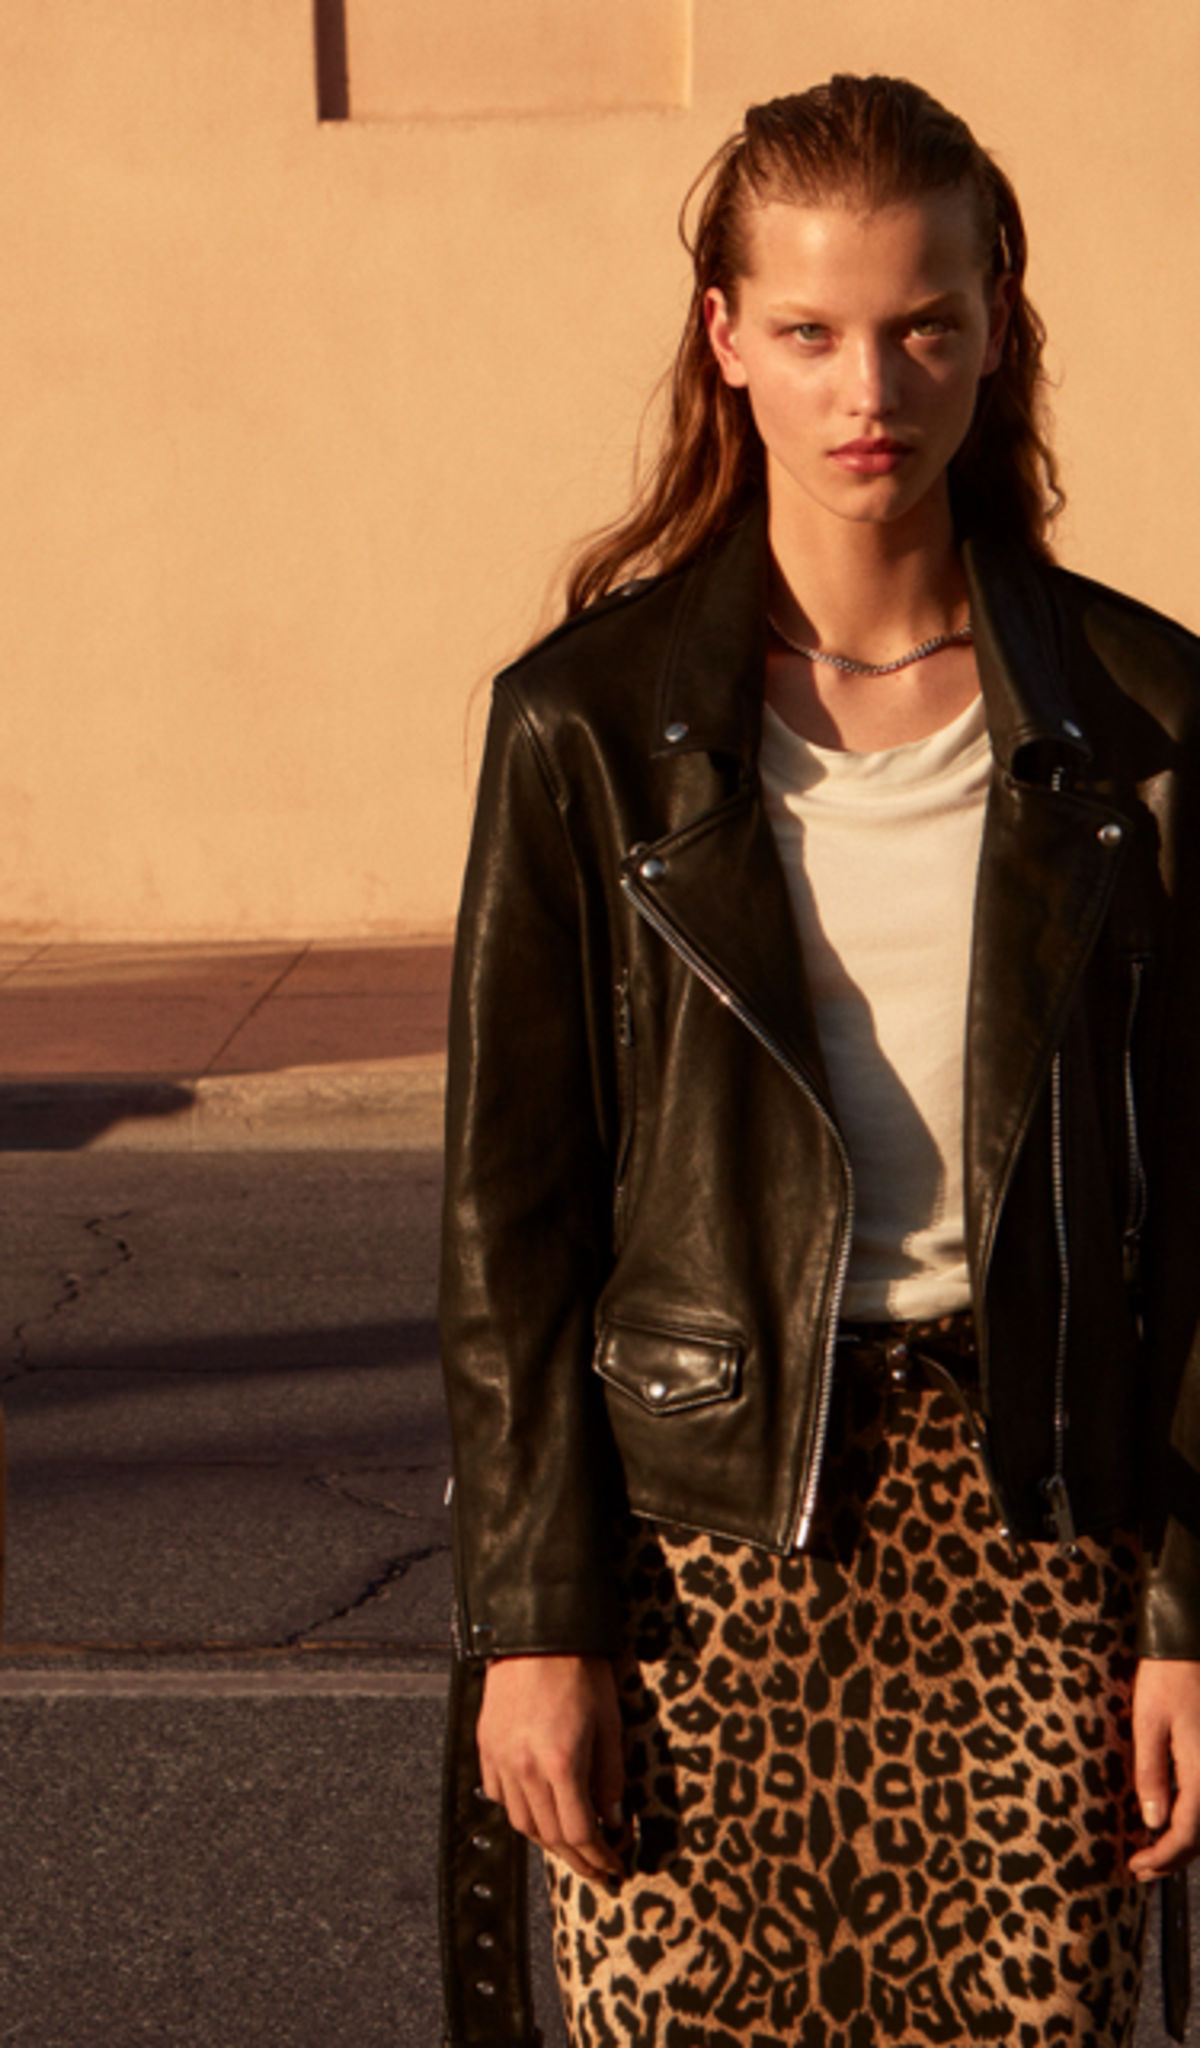 Woman wearing a leopard print skirt with a white t-shirt and black leather jacket.